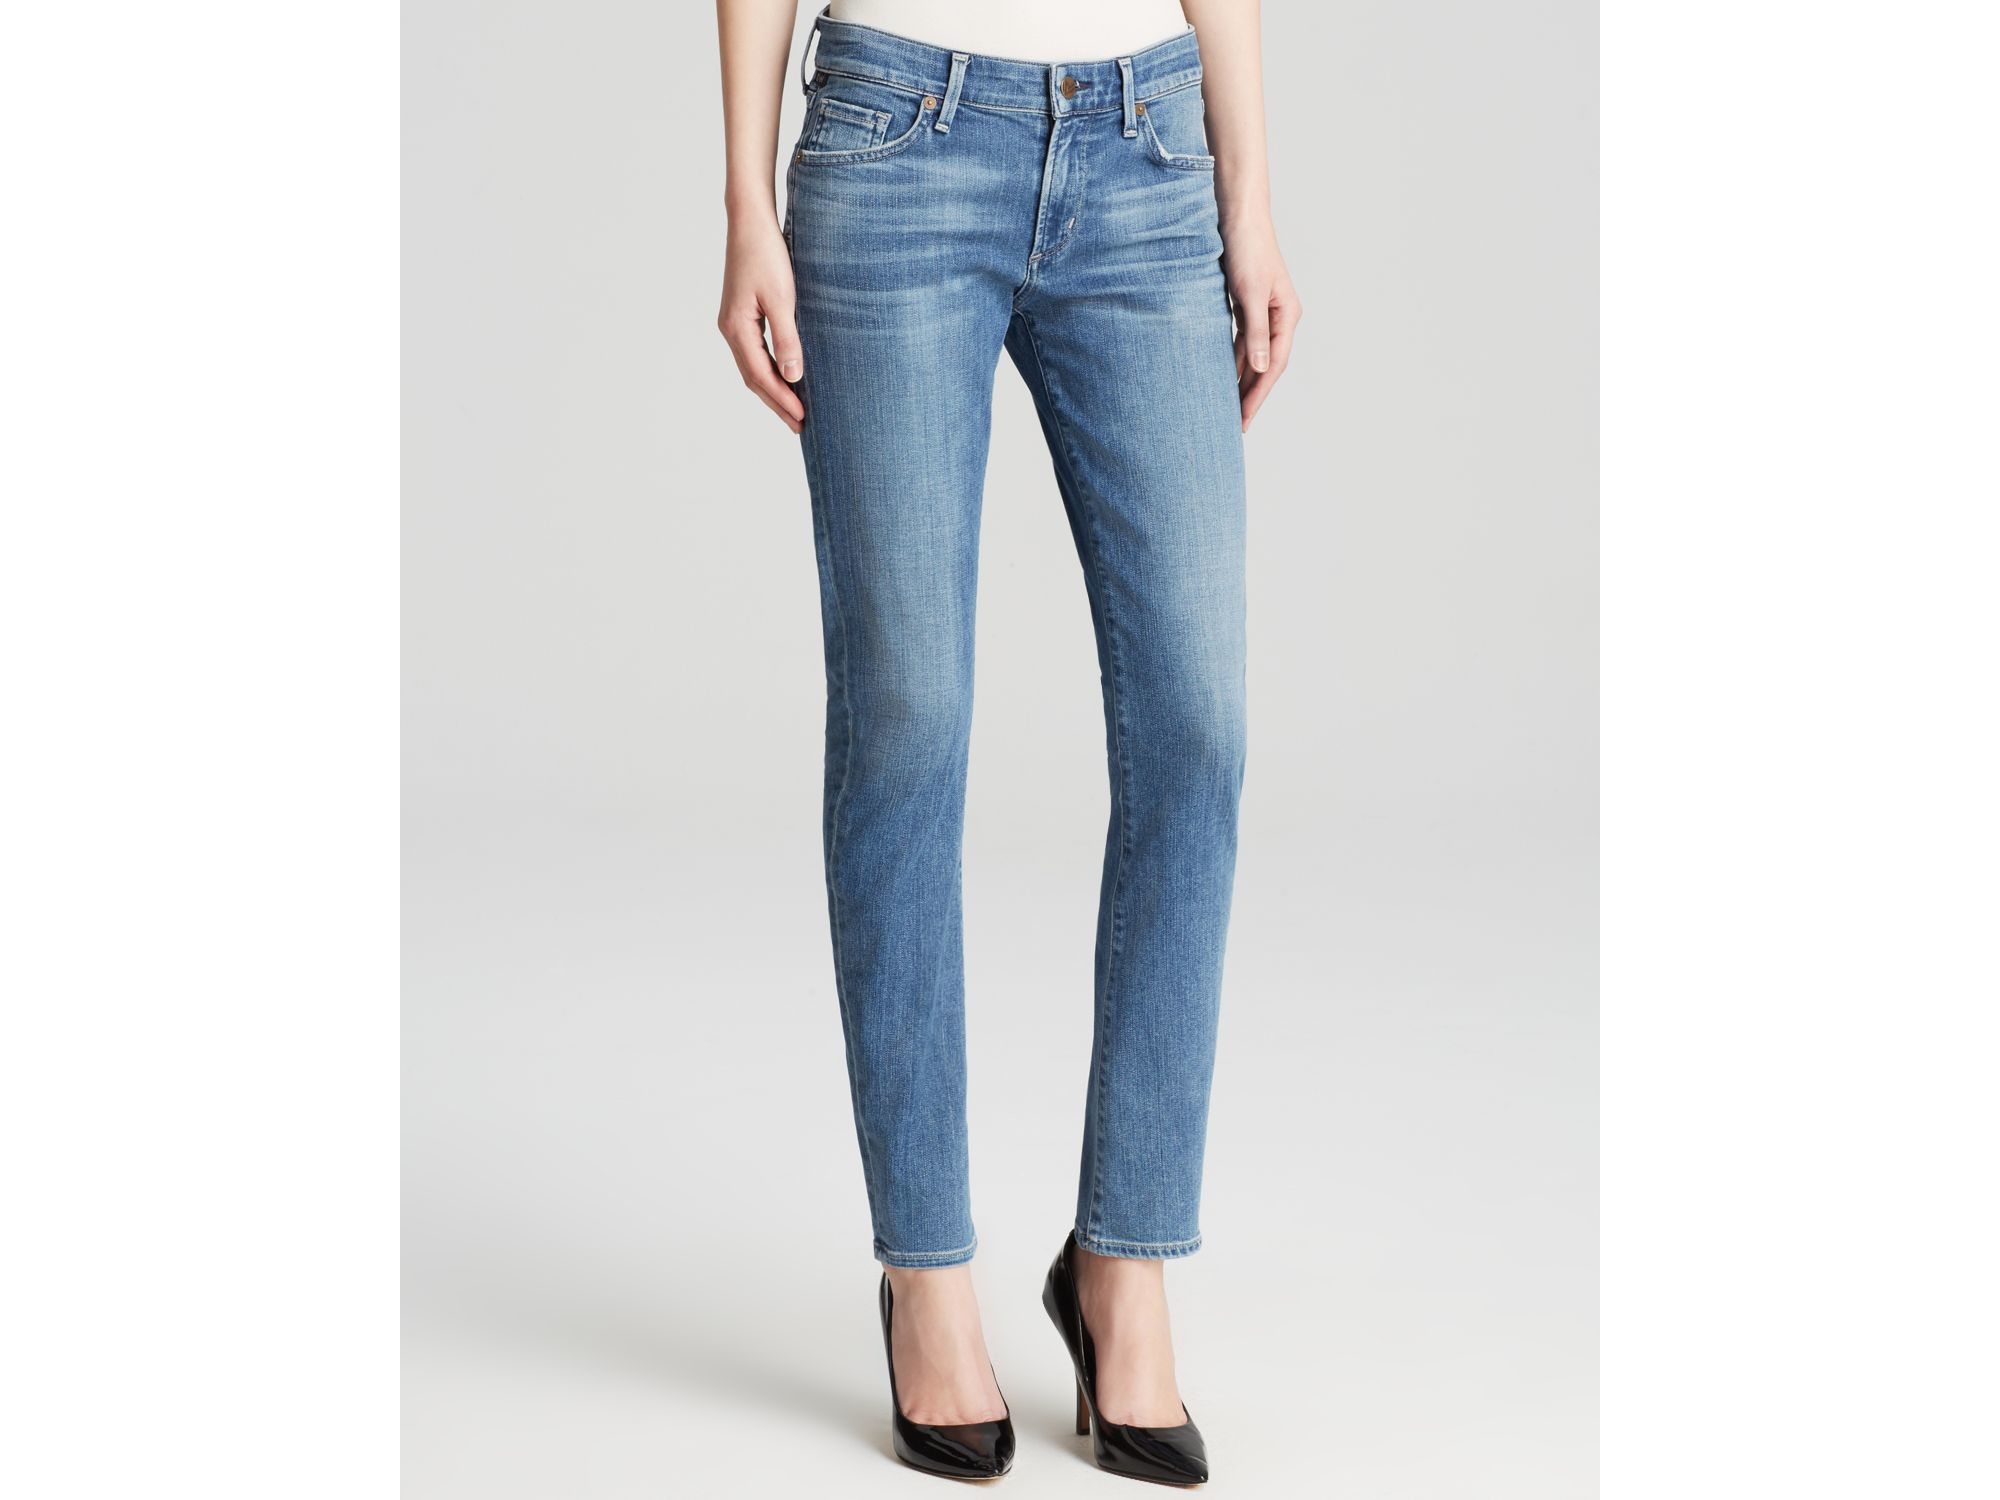 Citizens Of Humanity mid rise skinny jeans Clearance For Nice Footlocker Cheap Online Cheap Sale Outlet Cheap Online Store Manchester Cheap Sale Explore Wj6DFxJ